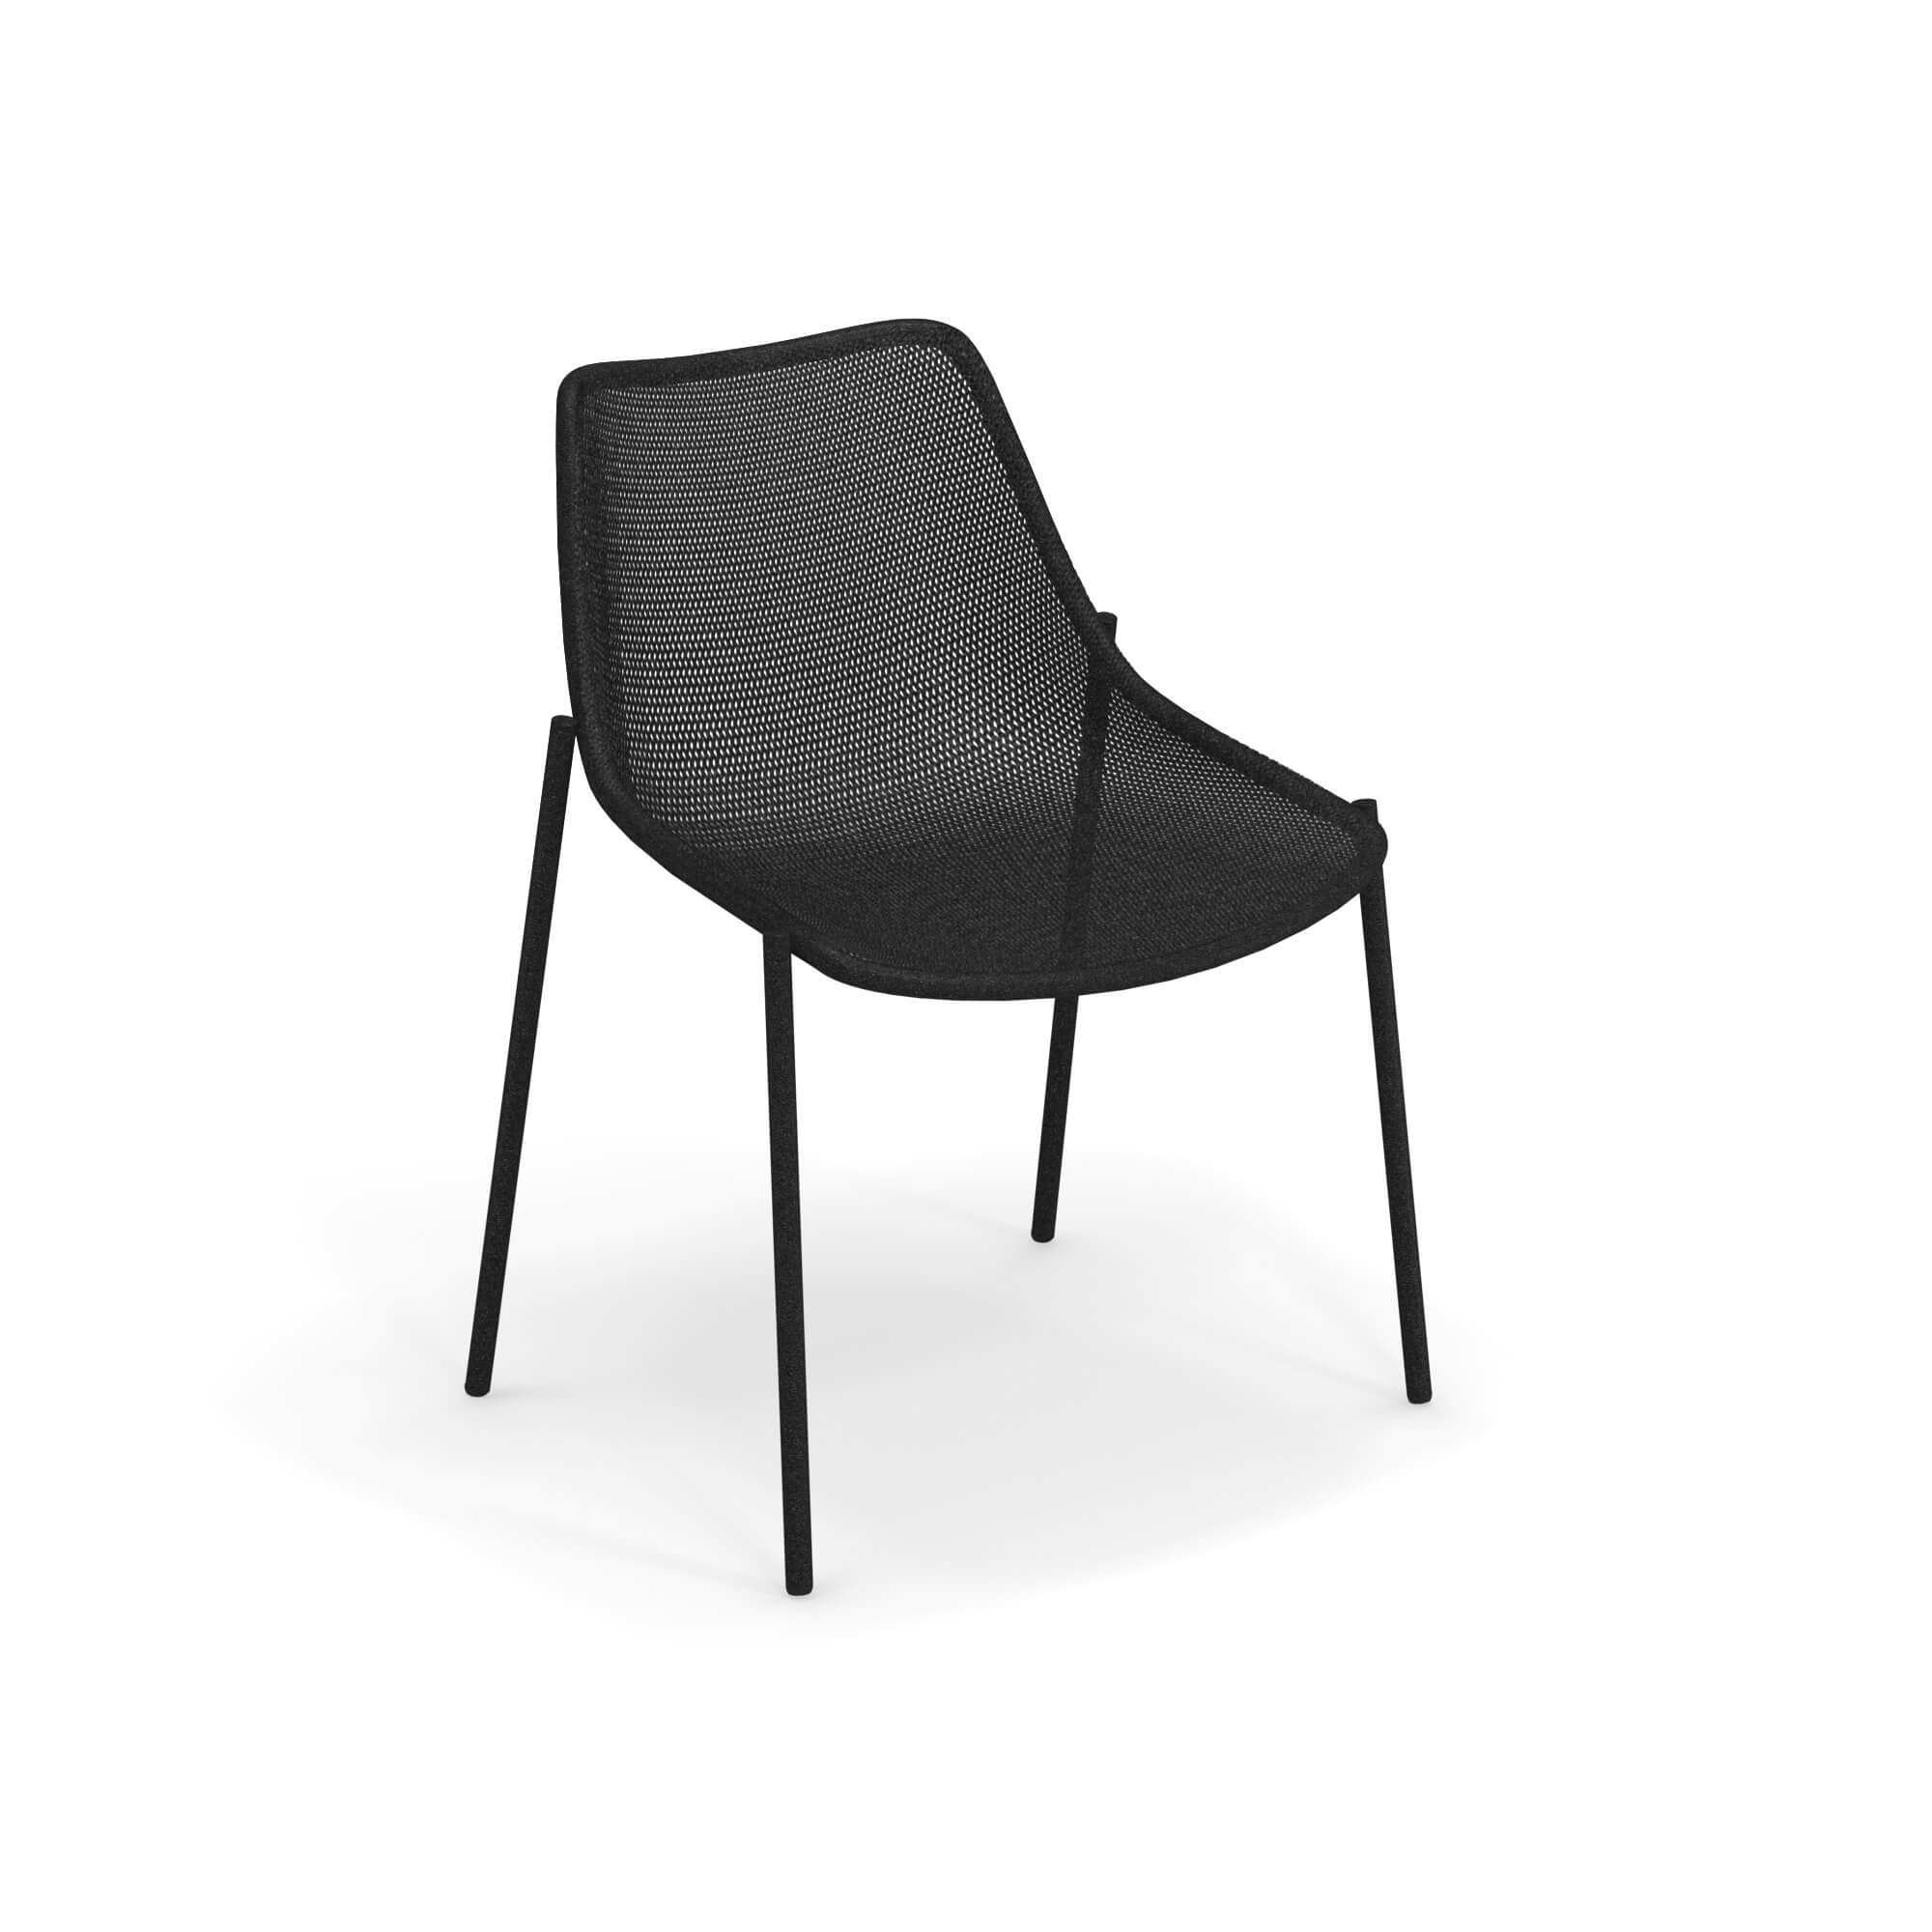 Garden chair / outside in steel - Collection Round - Emu.it